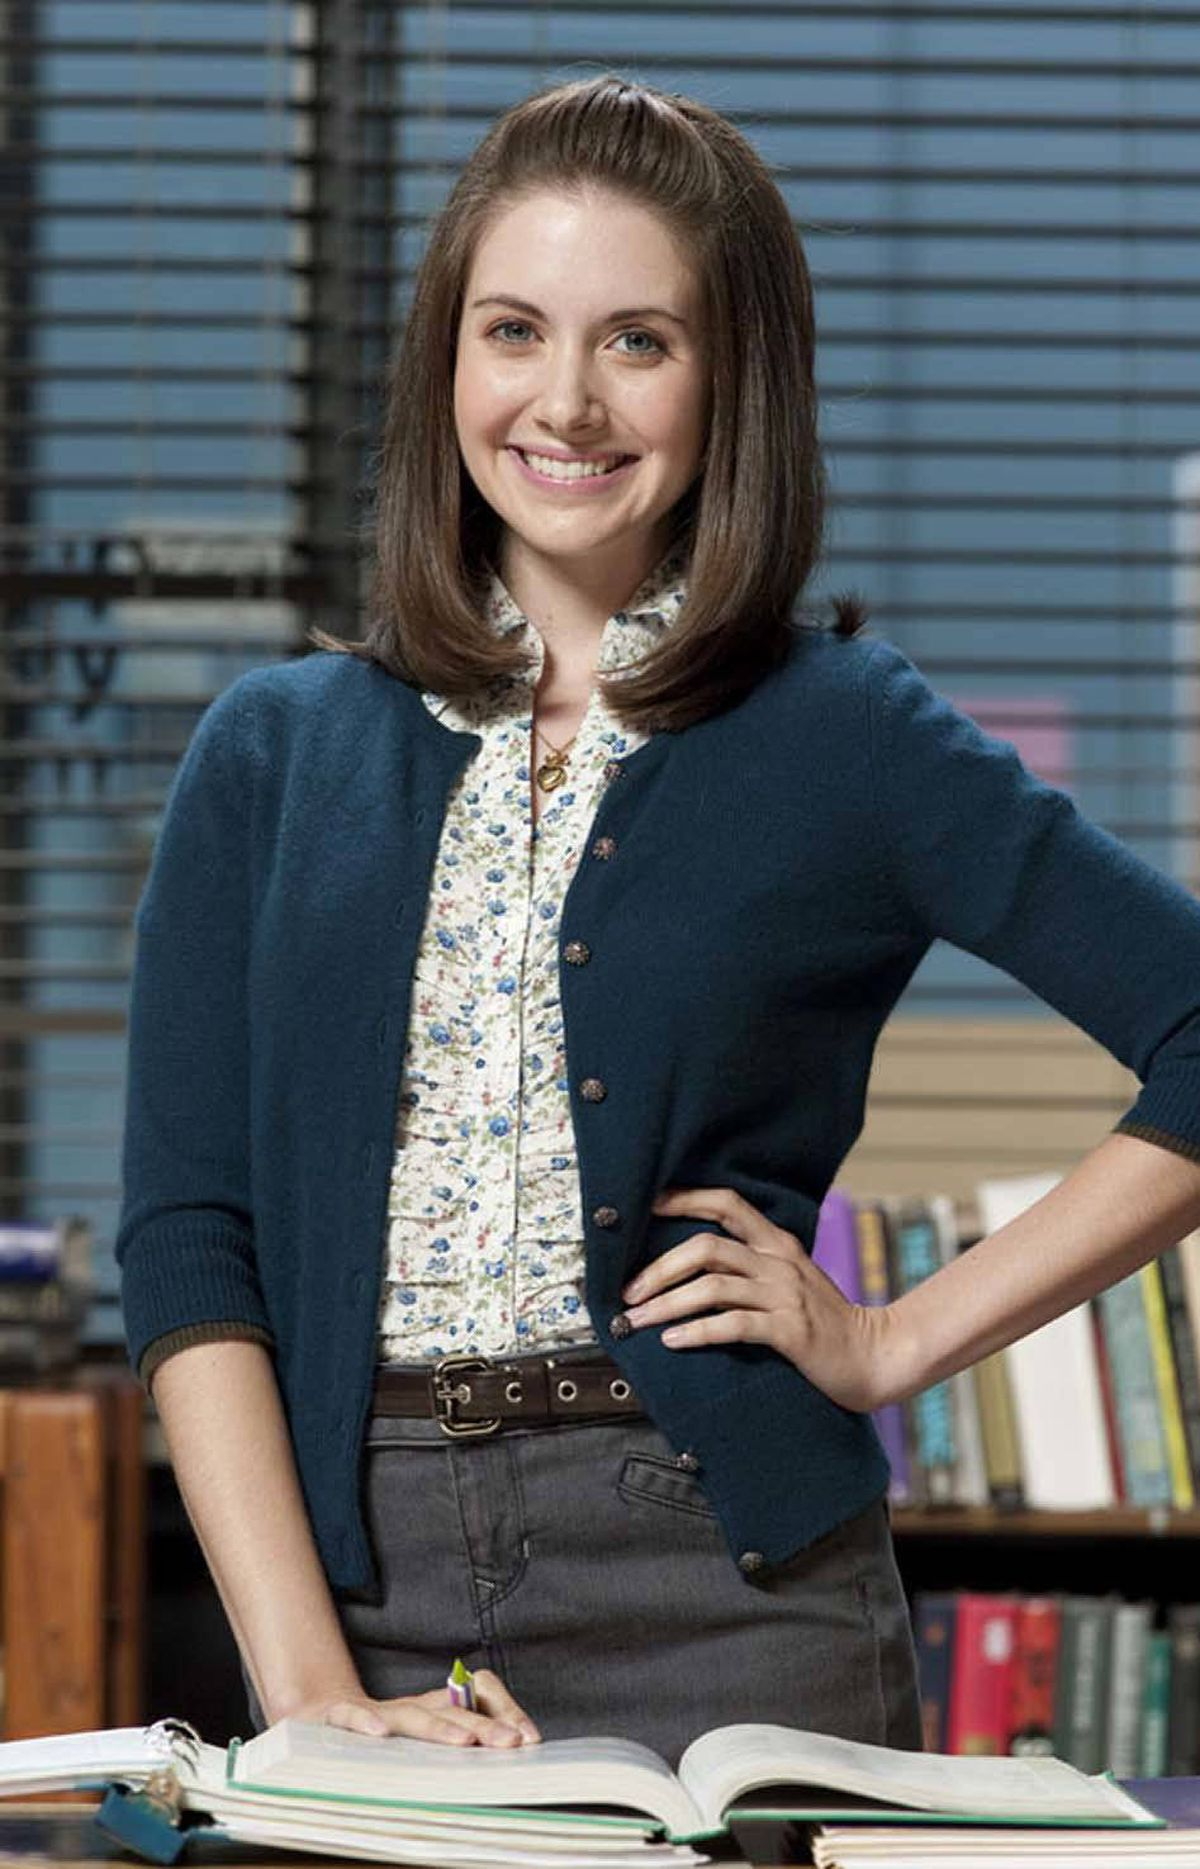 COMEDY Community NBC, CITY-TV, 8 p.m. ET/PT The student body of Greendale Community College test the scales of justice in tonight's new episode. The story opens with Annie (Alison Brie) finding the study group's delicate yam experiment smashed to bits on the science-lab floor. In hopes of saving their grade, the group tries to find the person responsible, with Abed (Danny Pudi) and Troy (Donald Glover) leading the investigation. The investigation culminates in an elaborate mock trial, with the stern Professor Kane, played by The Wire's Michael K. Williams, serving as judge, jury and possibly executioner.